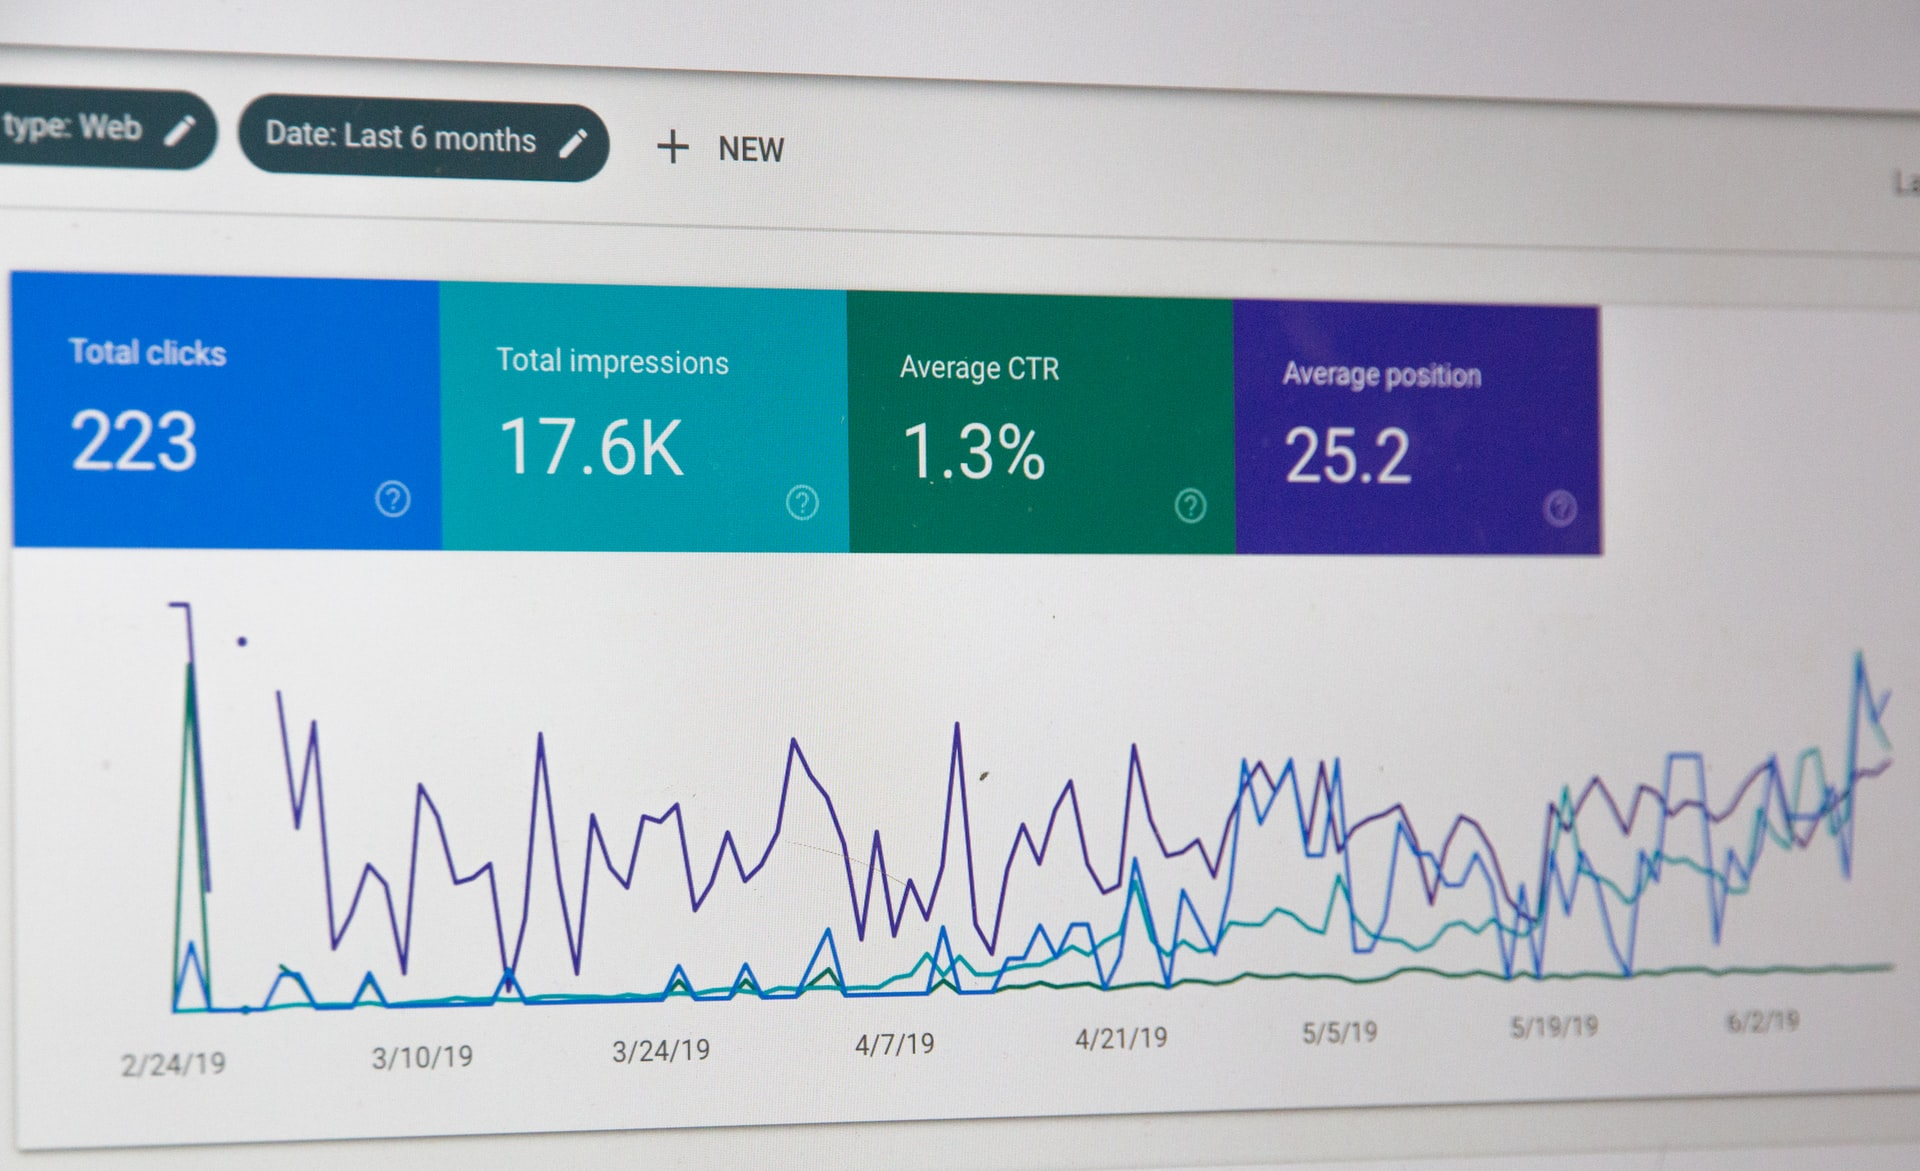 How Does Unstack Support Your Website SEO?